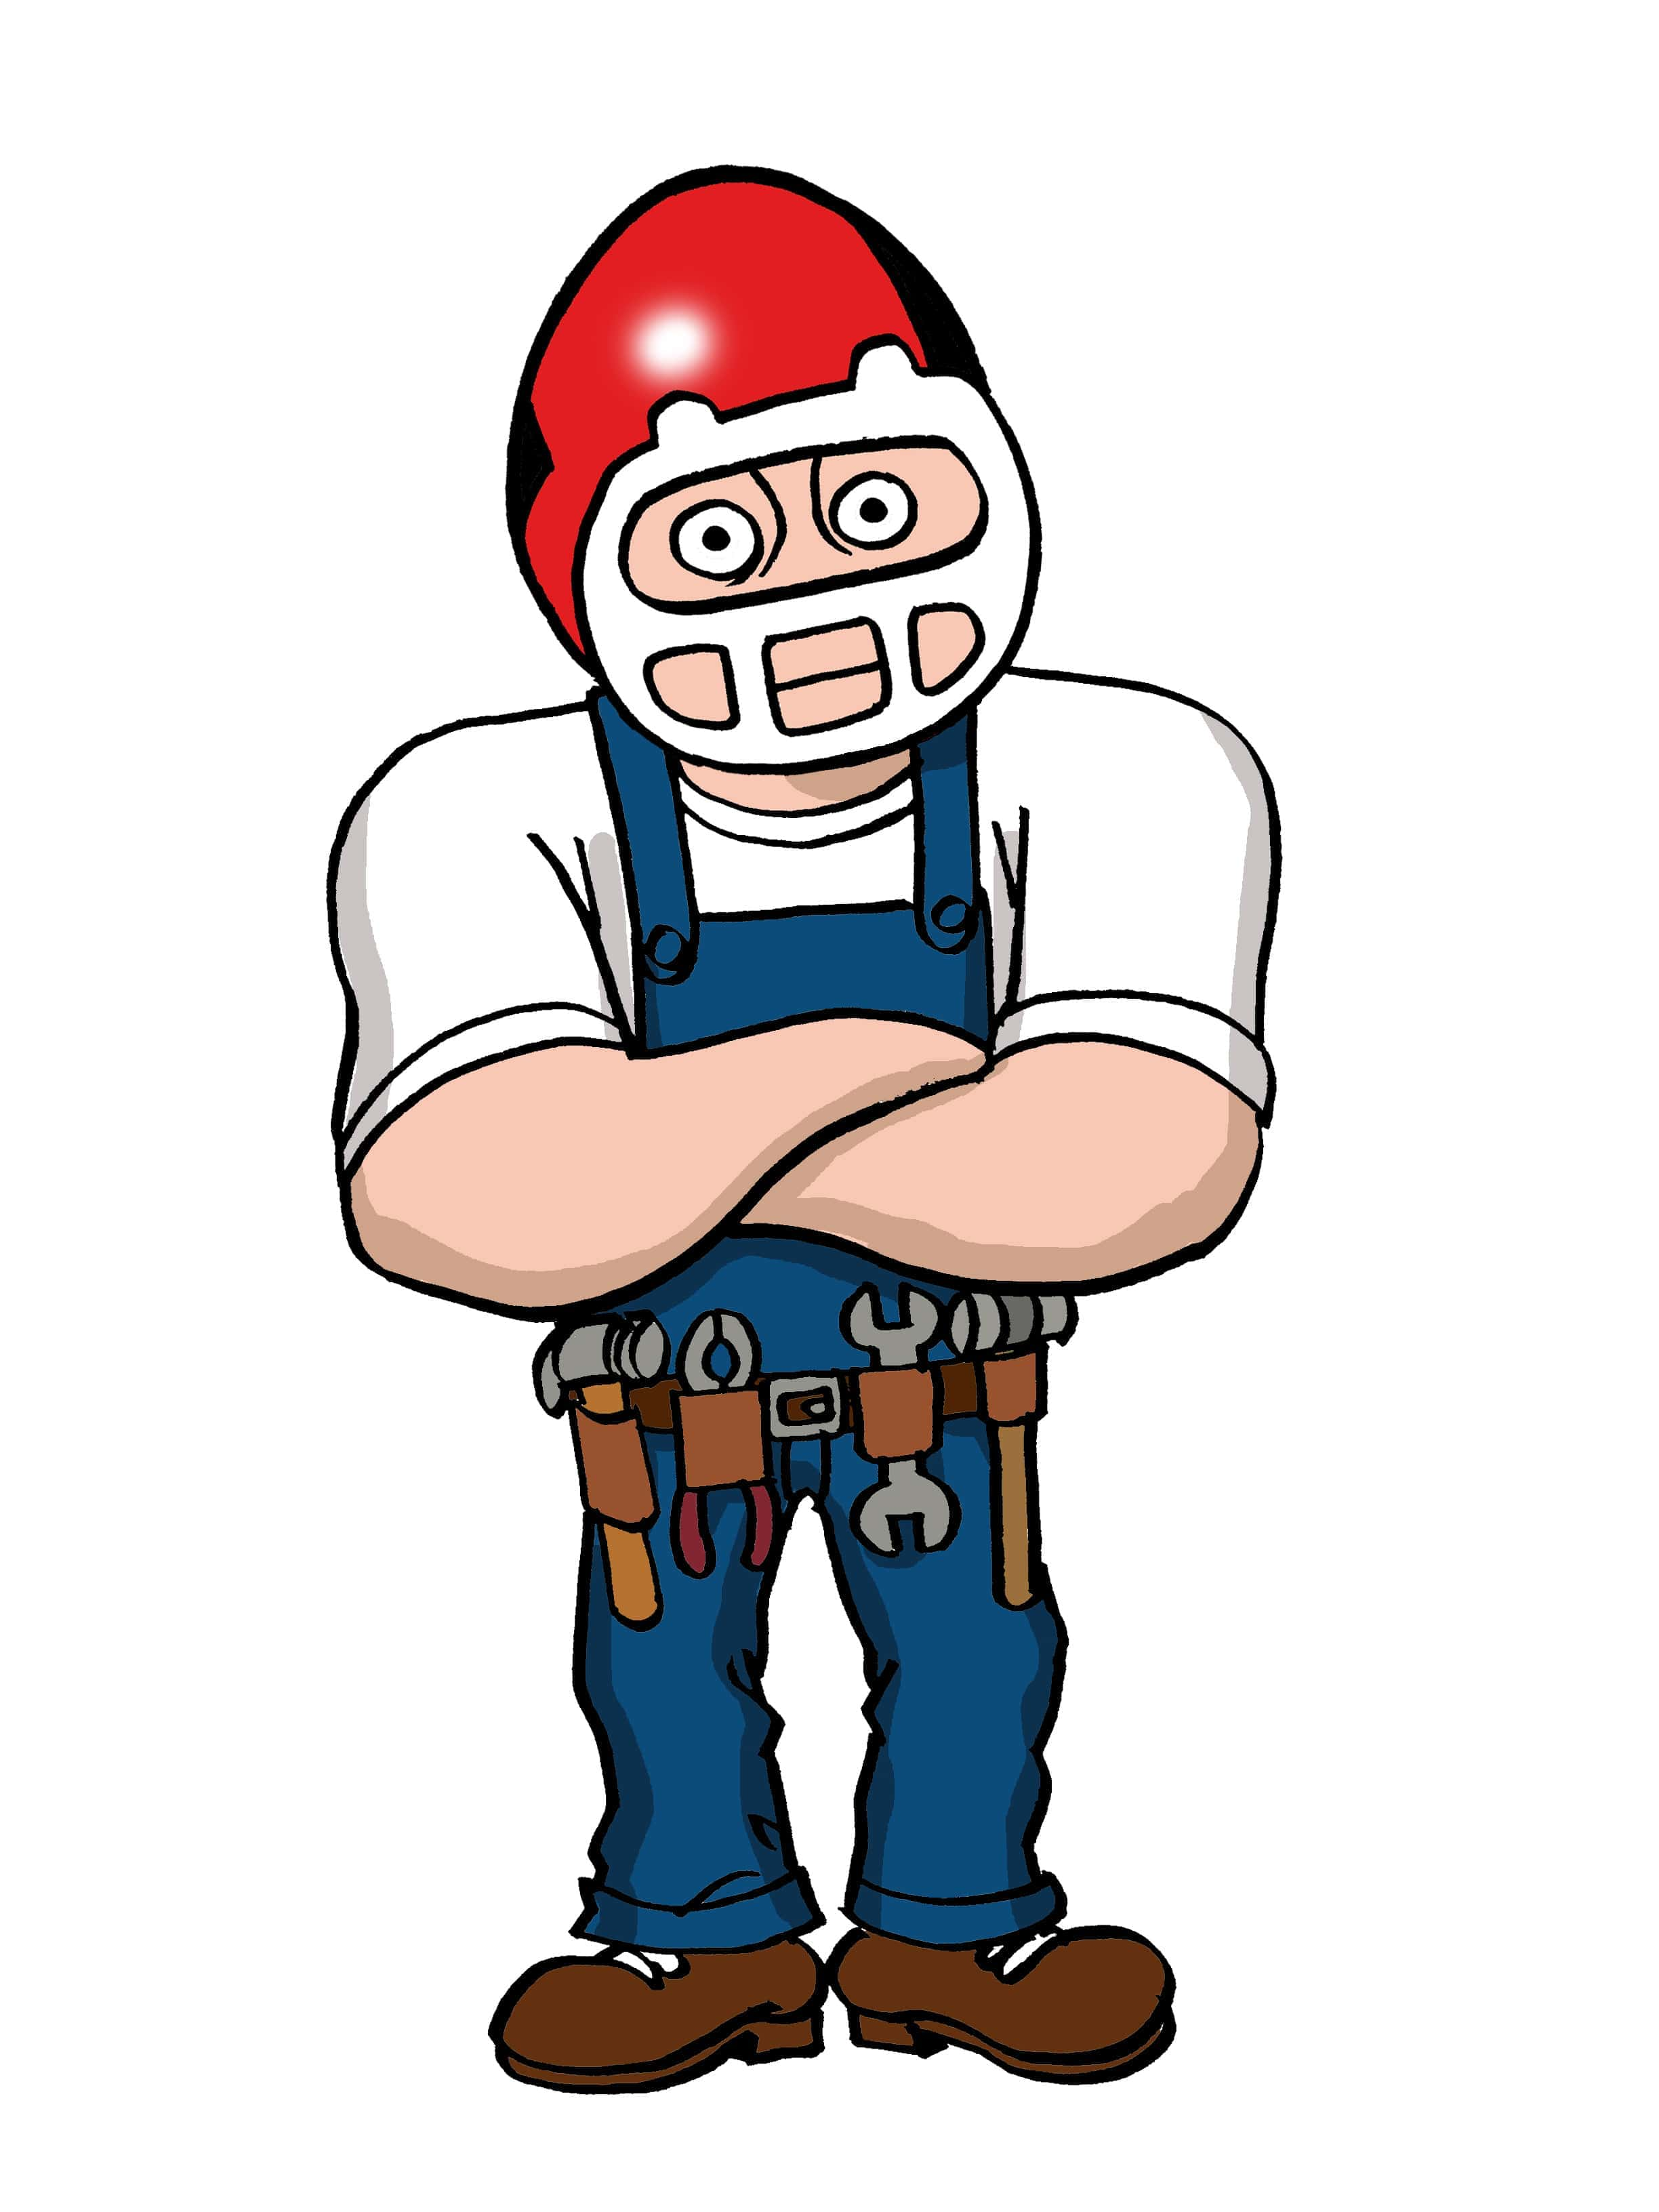 The Plumbing Pro in a white t-shirt